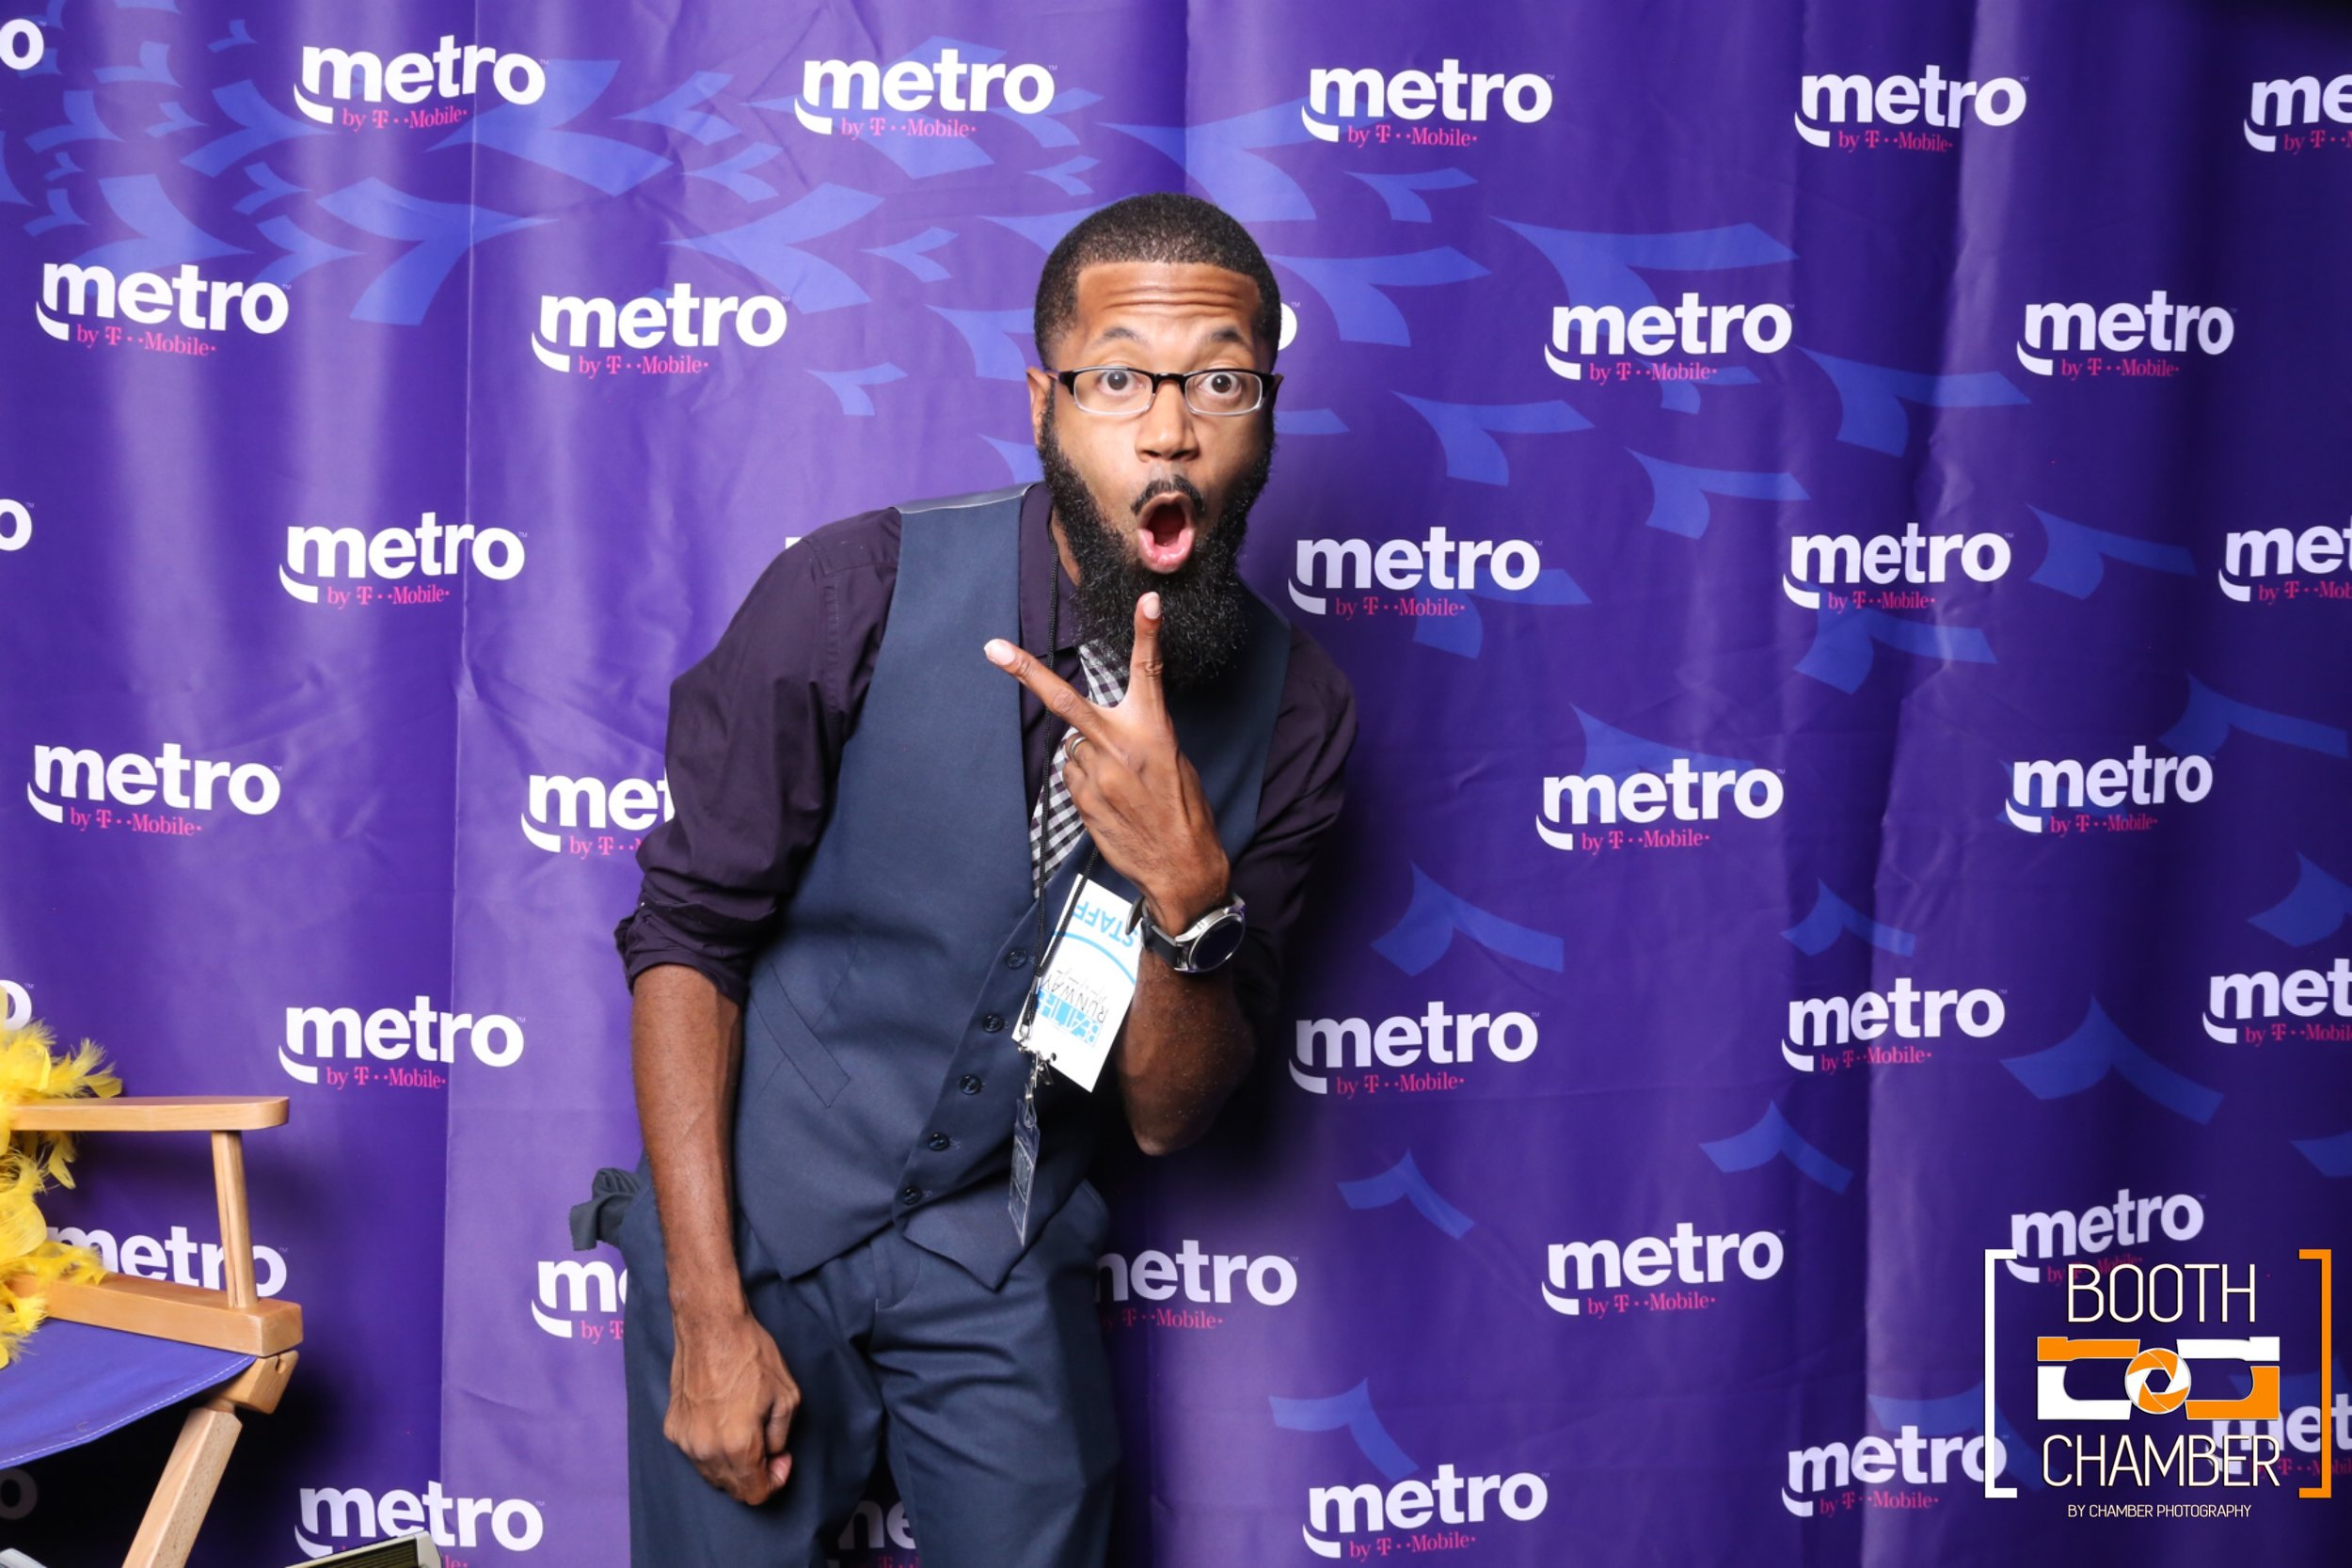 Booth Chamber Photo Booth Beat the Runway Antoine Hart Orlando _9 (7).jpeg